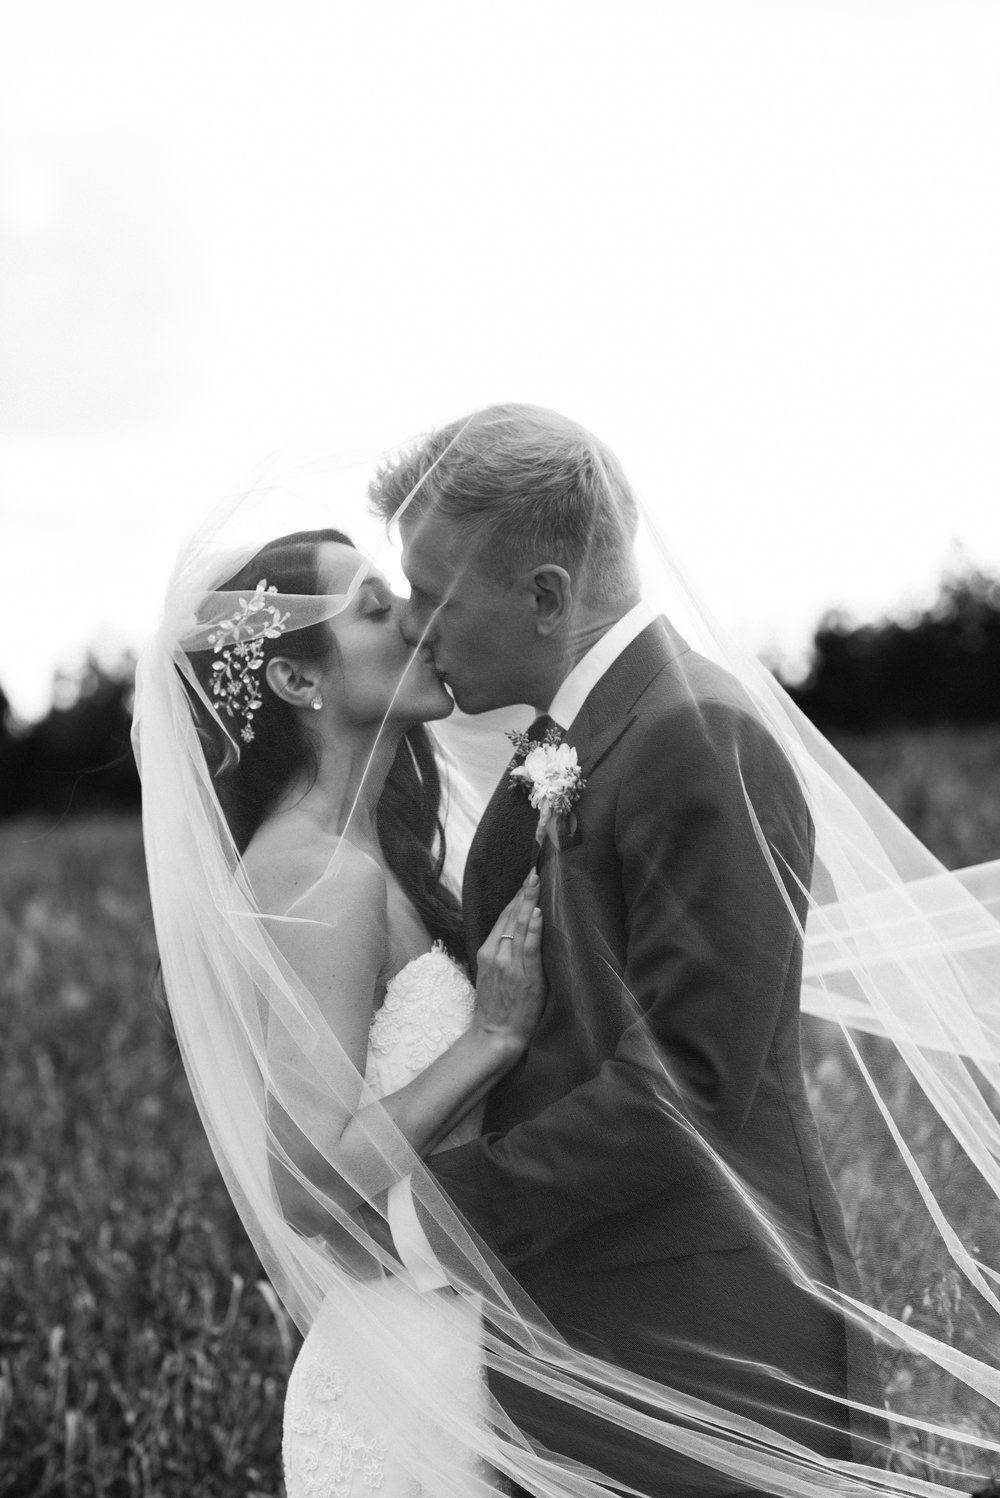 bride-groom-kissing-veil-black-white-photo